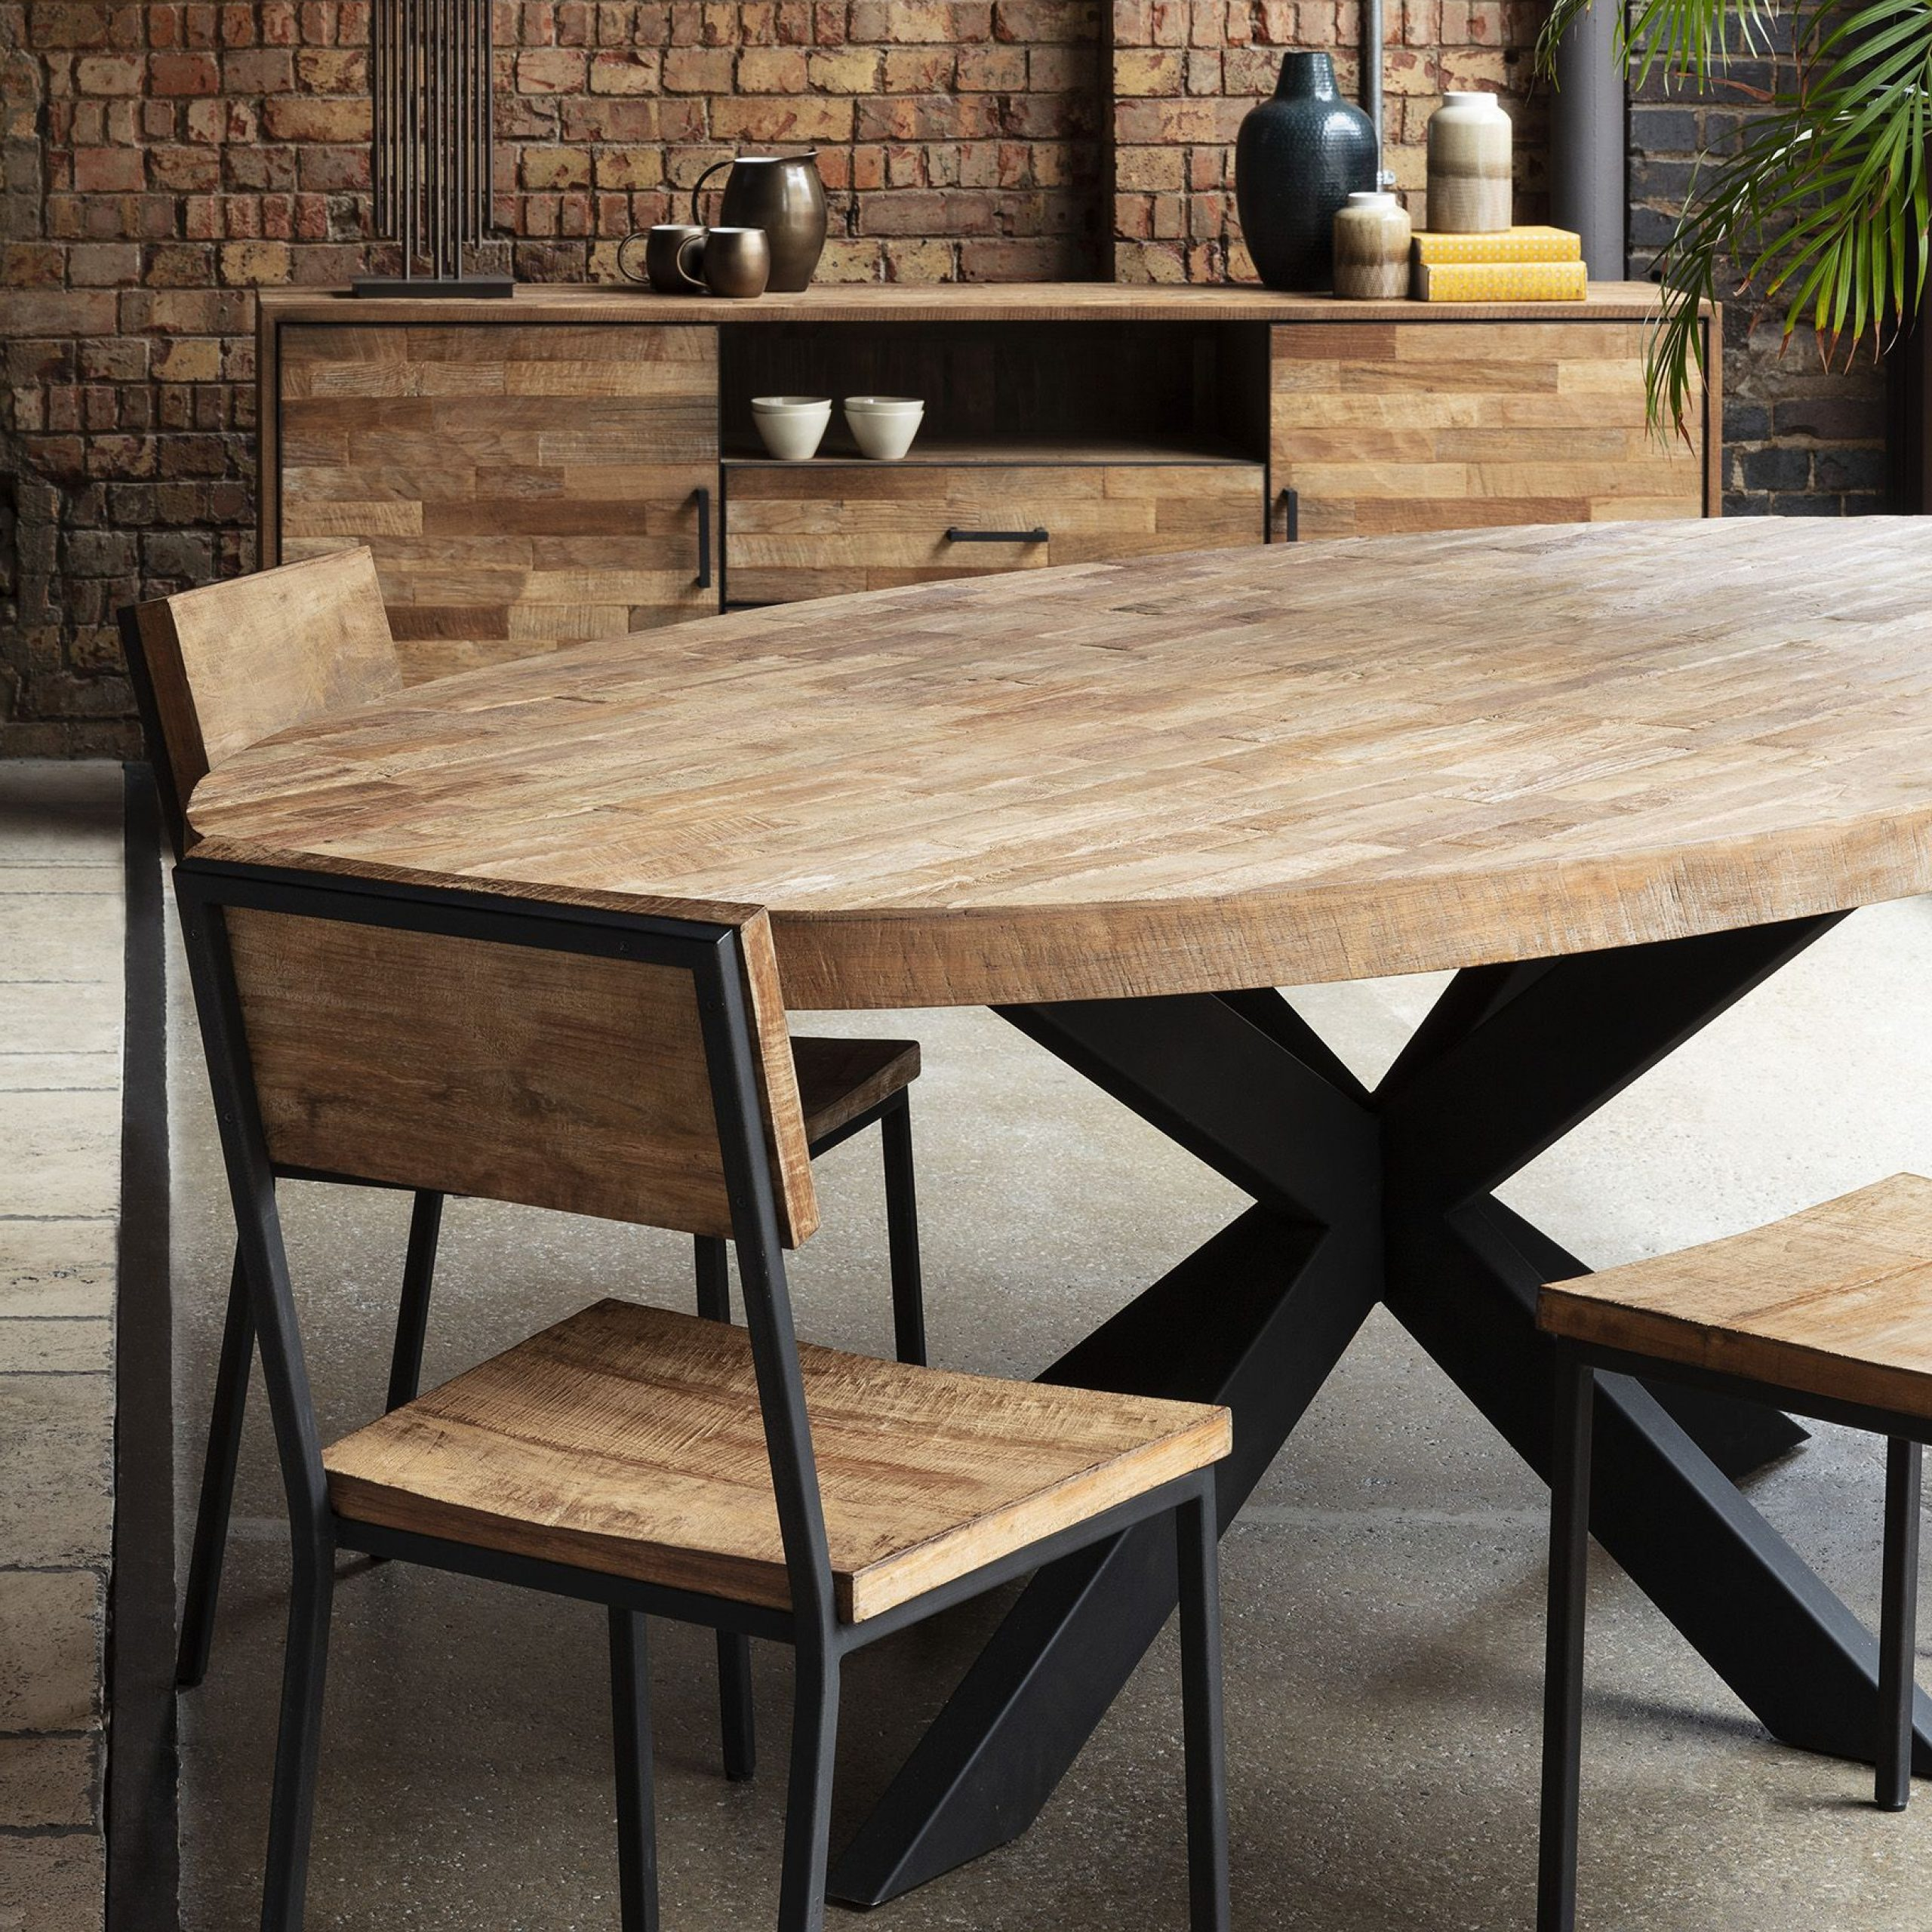 Widely Used Acacia Wood Top Dining Tables With Iron Legs On Raw Metal Within Baxter Bond Teak Oval Dining Table (View 23 of 25)